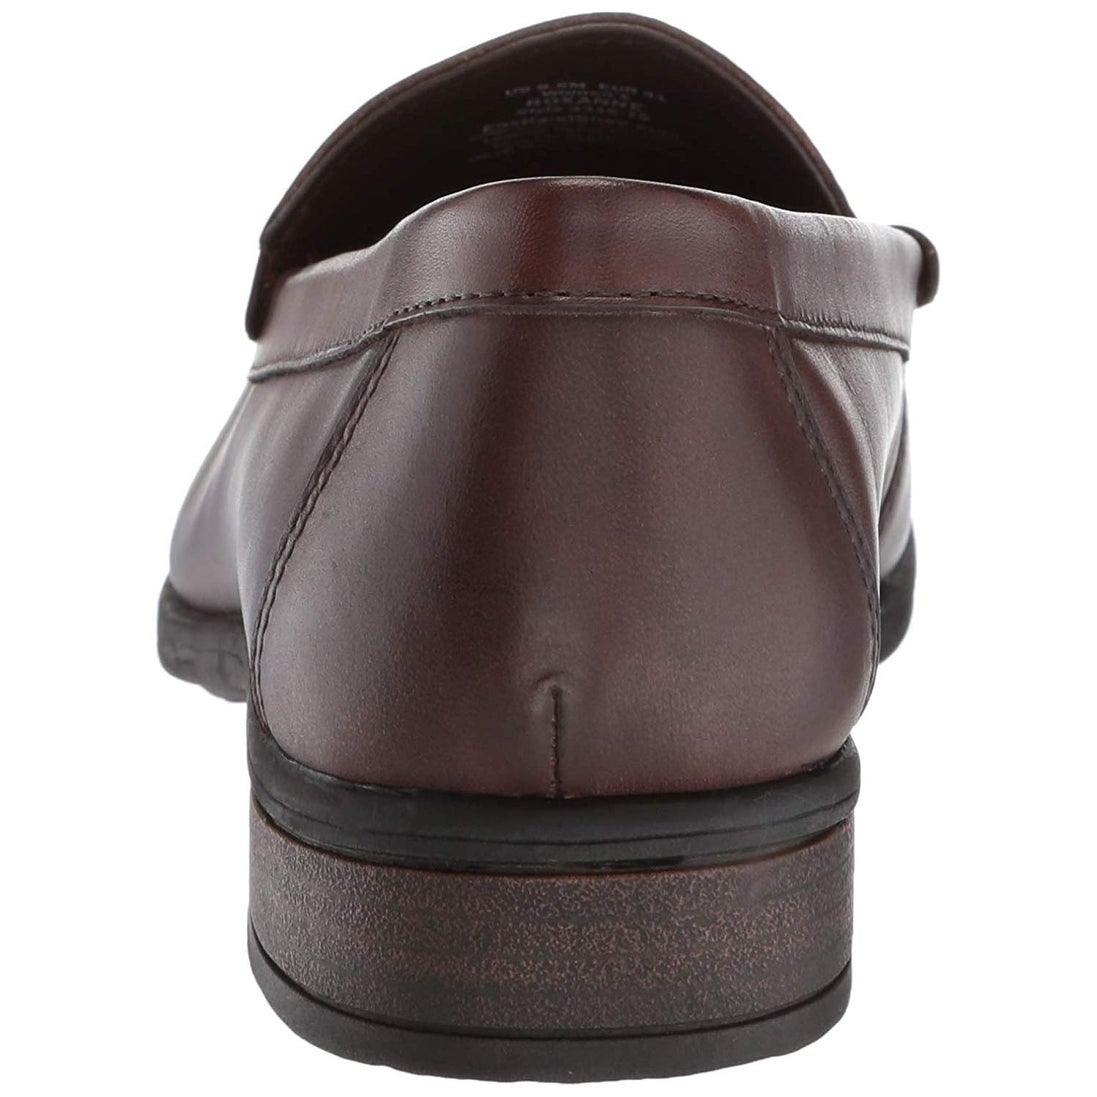 3c8ddb60cef Shop Eastland Womens Roxanne Leather Almond Toe Loafers - Free Shipping  Today - Overstock - 24030477